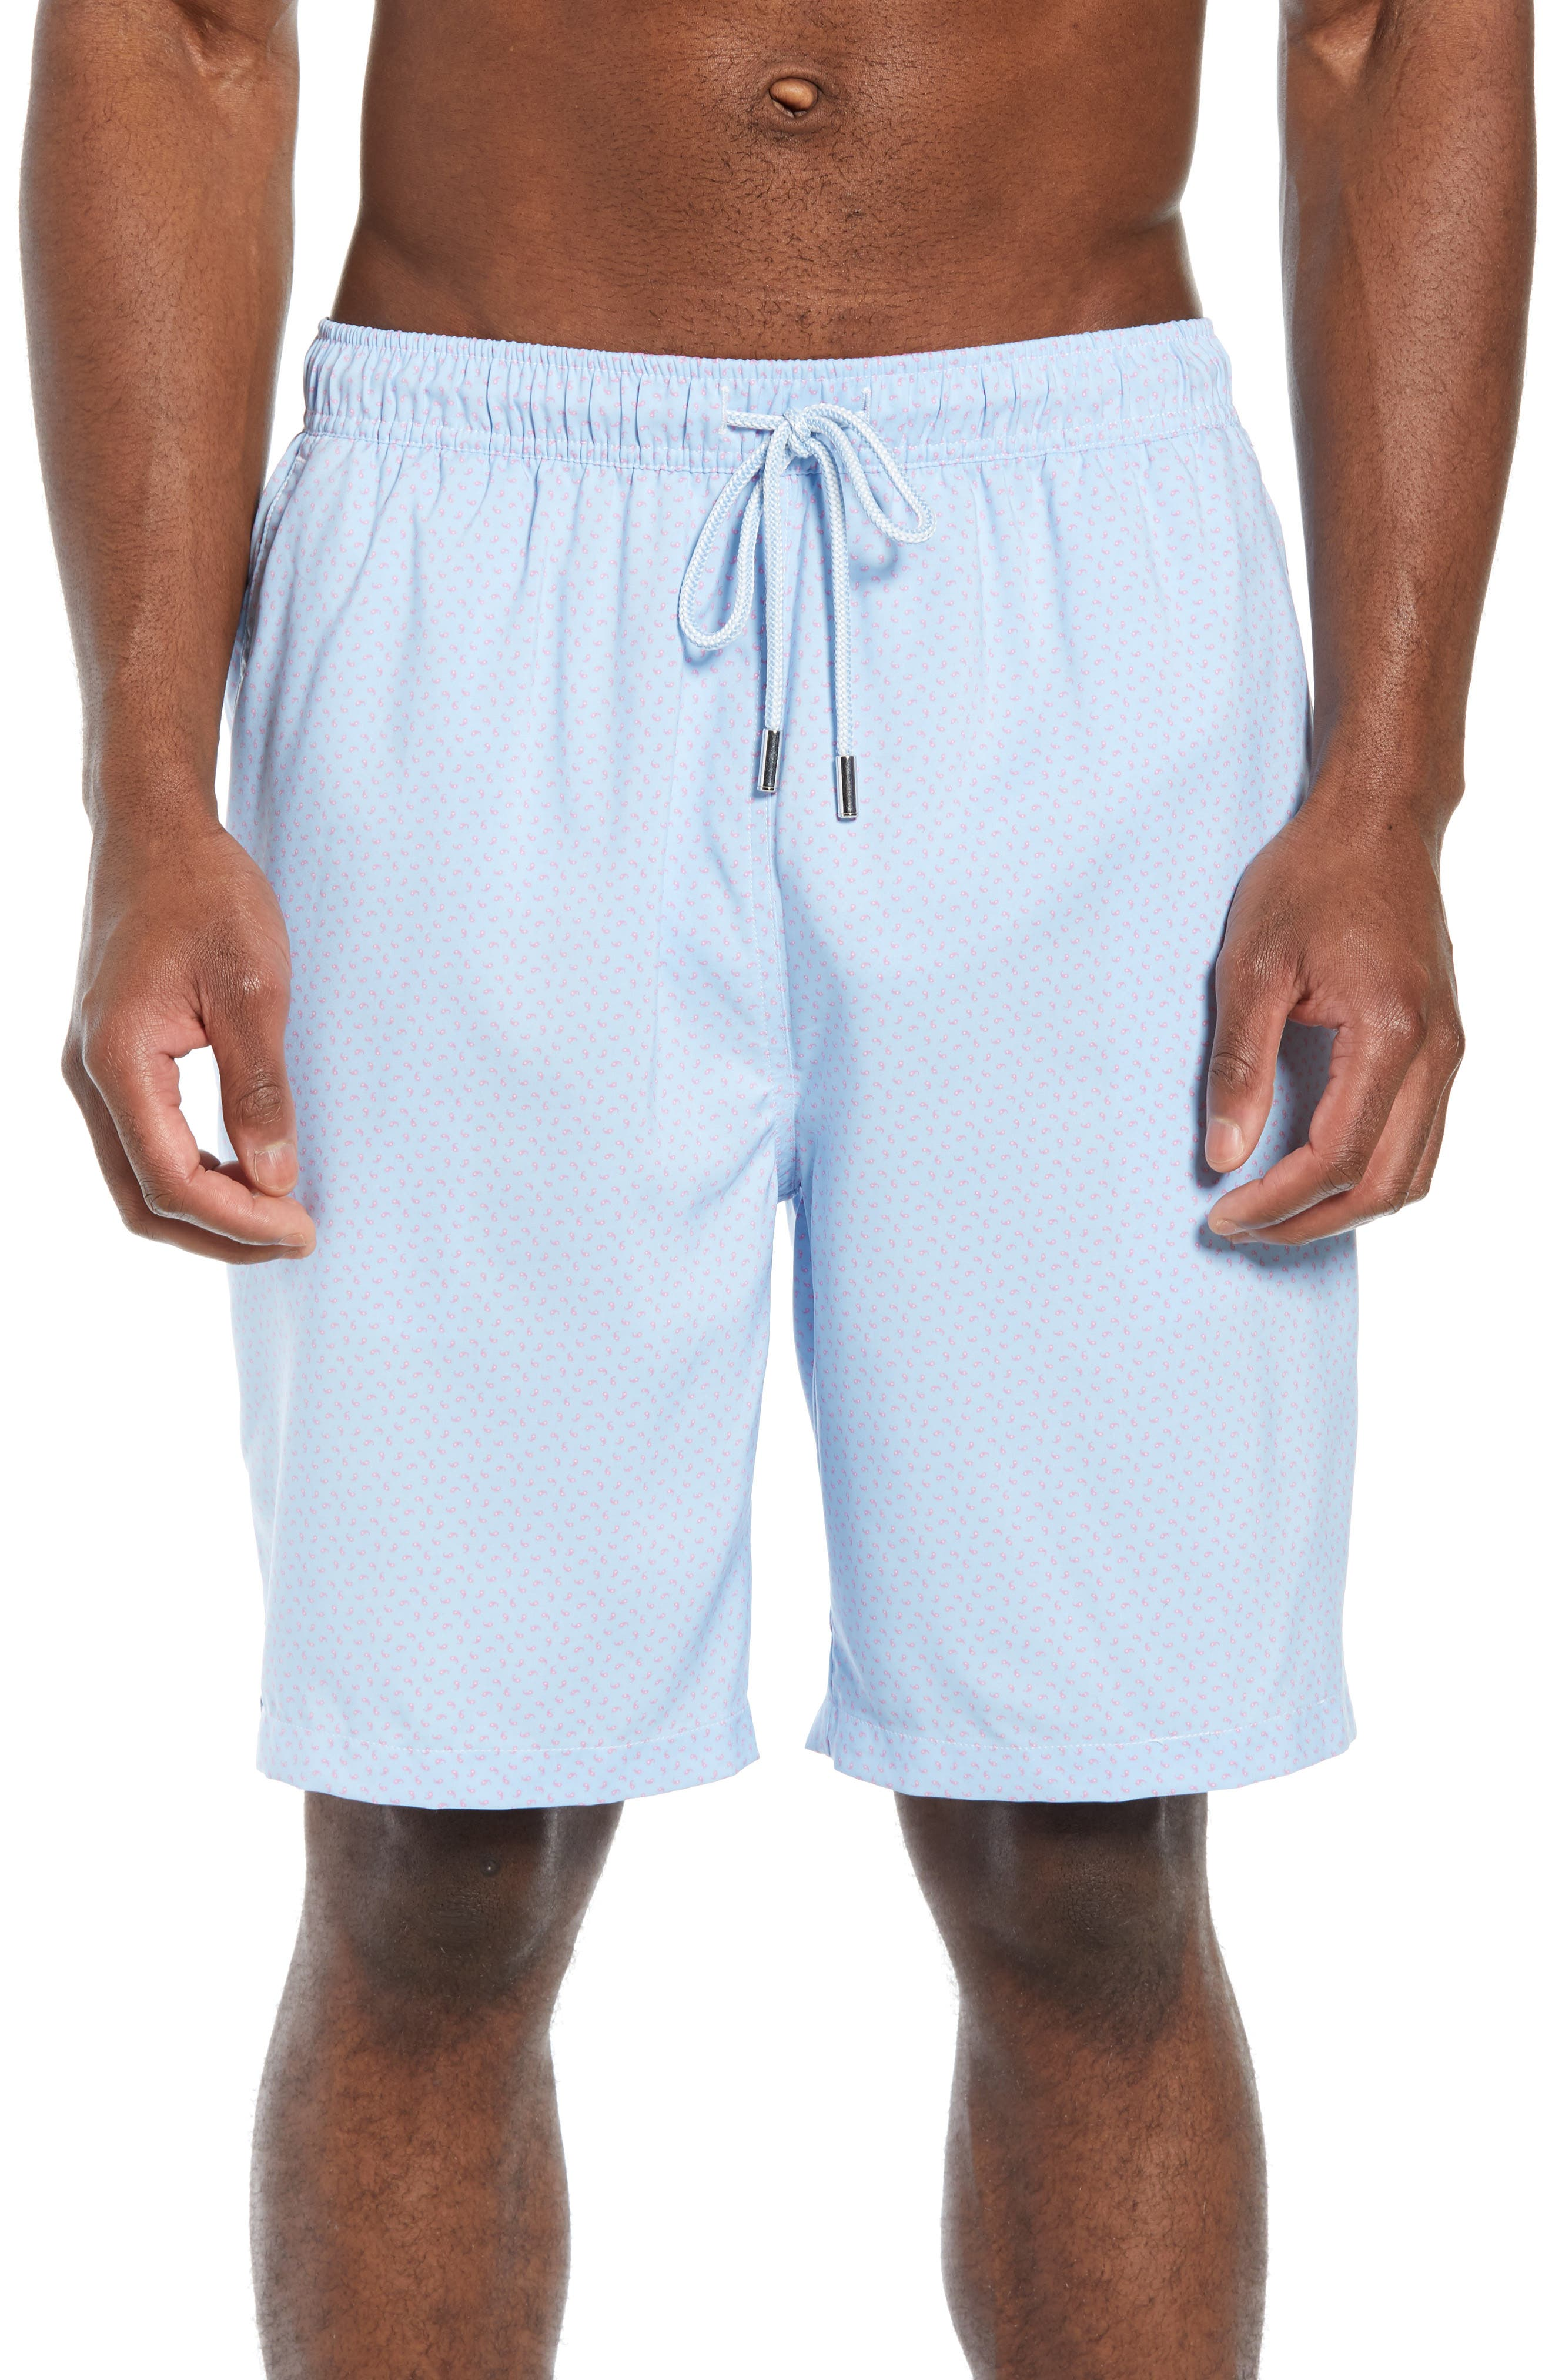 Peter Millar Sea Monkeys Print Swim Trunks, Blue